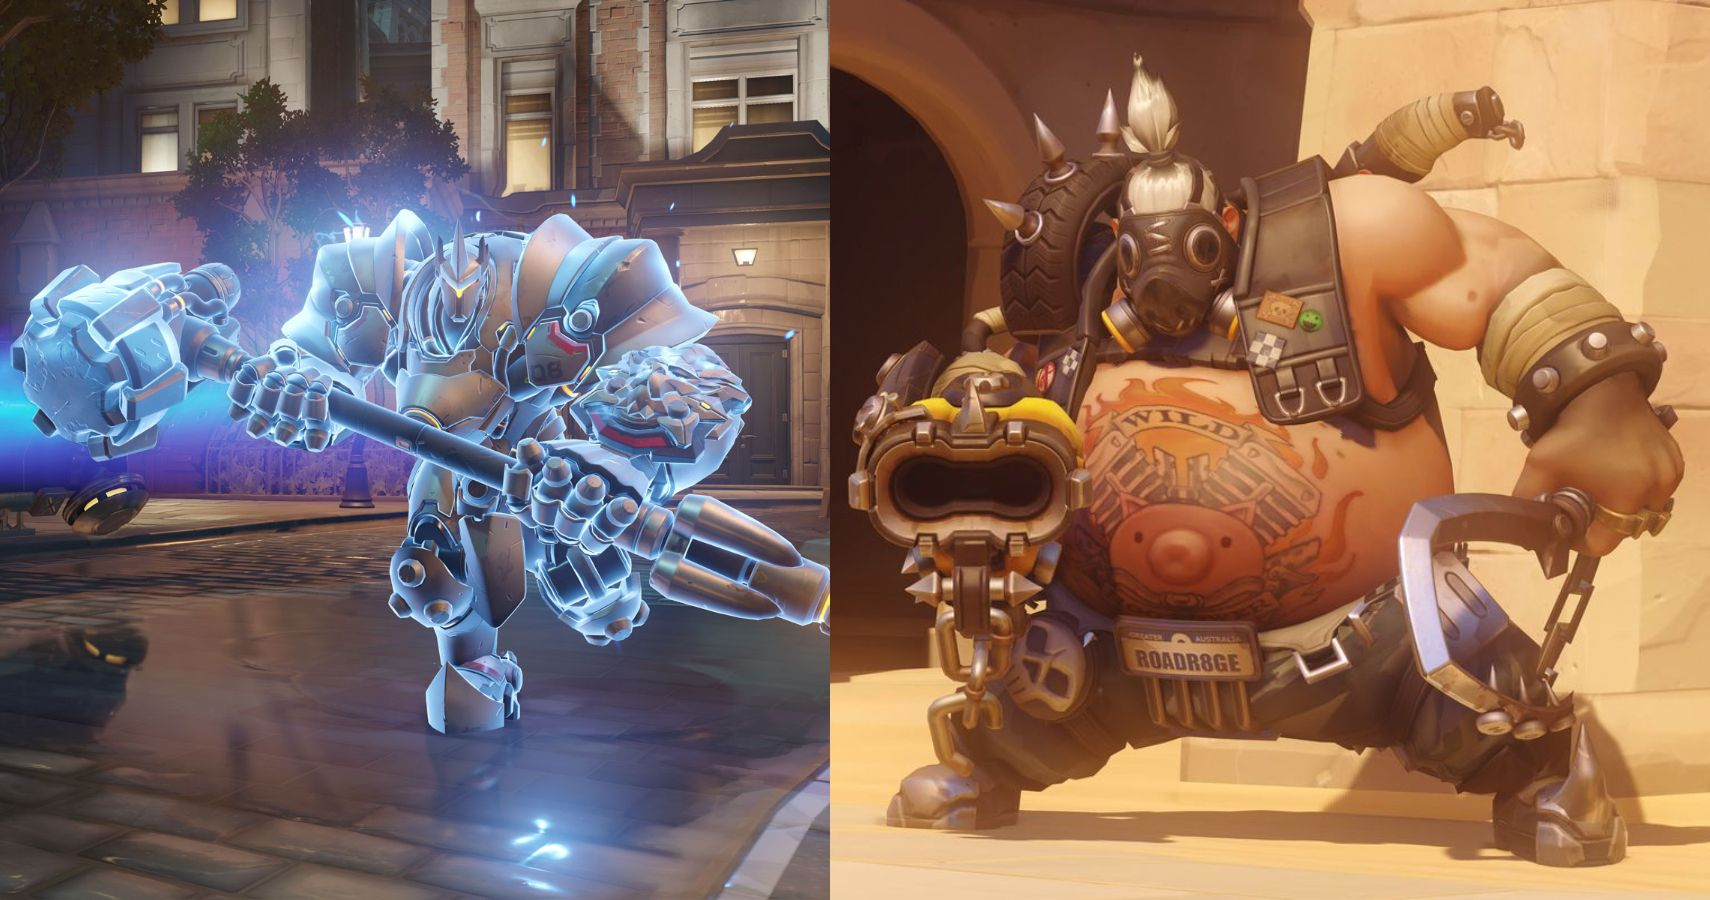 becoming a tank in Overwatch